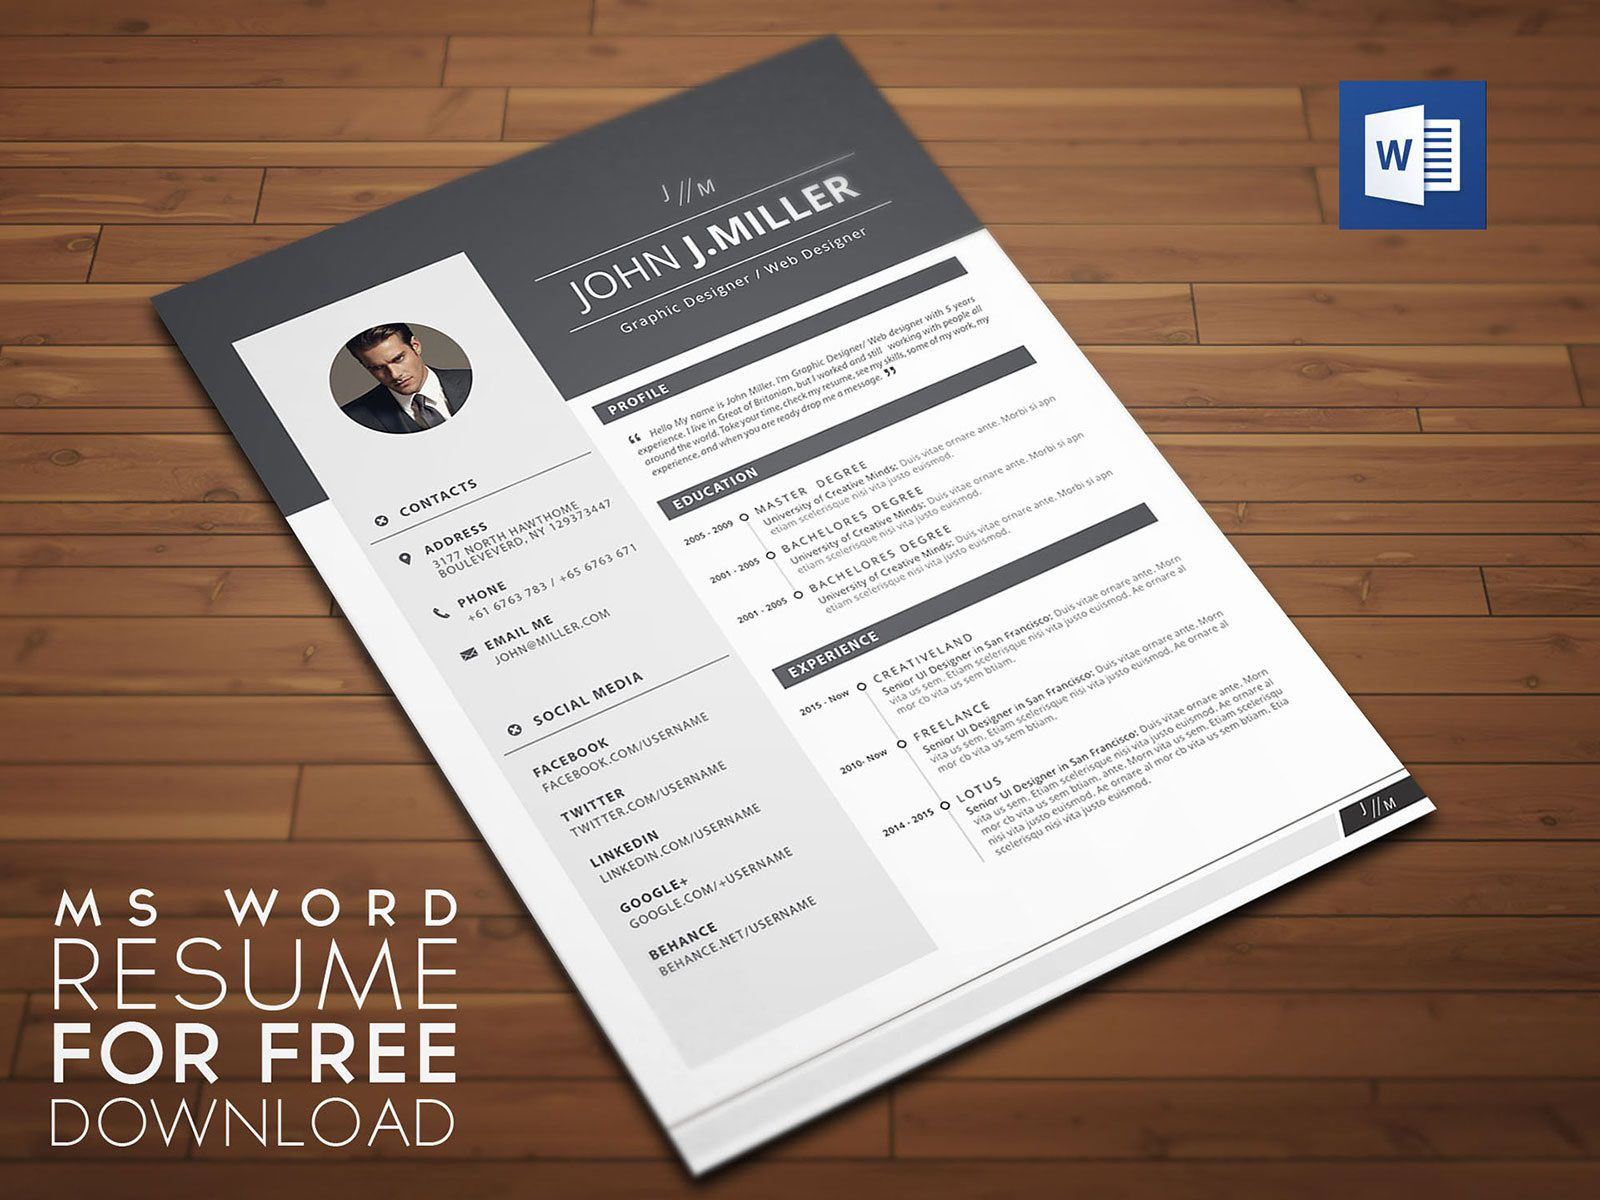 005 Unique Resume Template Download Word Picture  Cv Free 2018 2007 Document For FresherFull